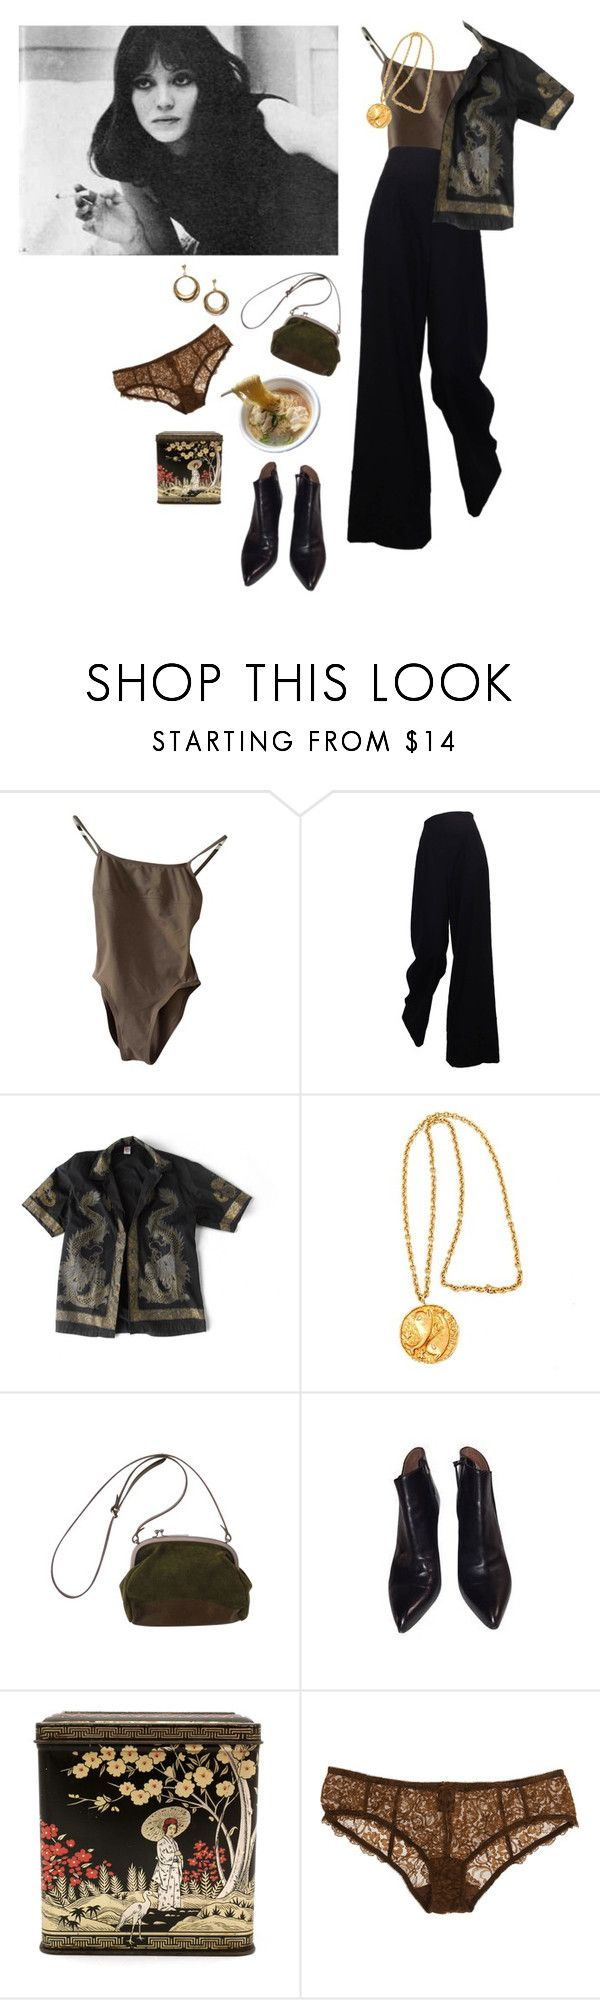 """Pisces"" by leylamia ❤ liked on Polyvore featuring The Row, Margaret Howell, Alaïa and Deborah Marquit"